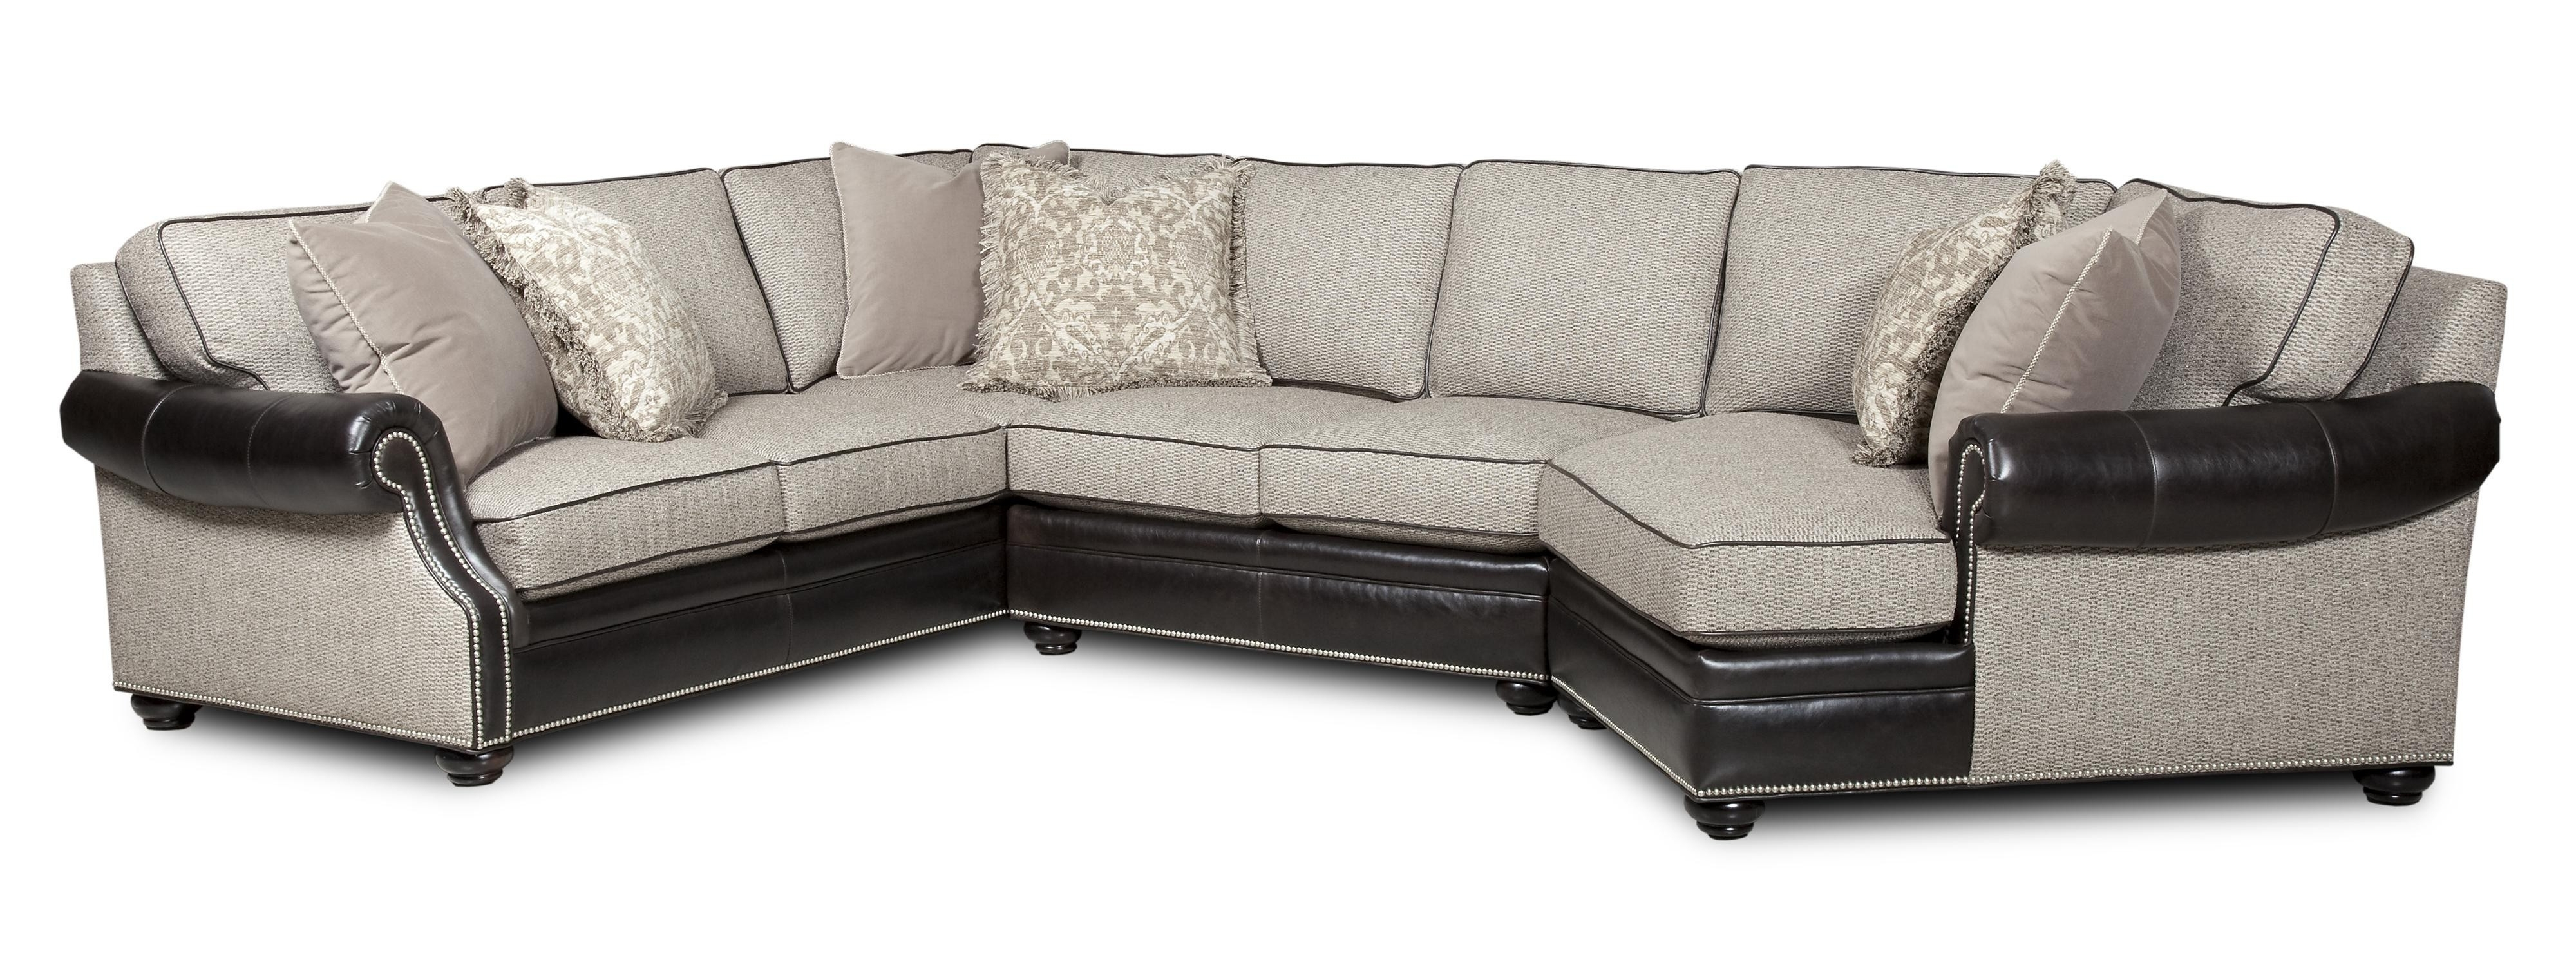 Most Recent Furniture : Ethan Allen Used Furniture Craigslist Elegant Tr E2 Inside Kelowna Sectional Sofas (View 6 of 20)